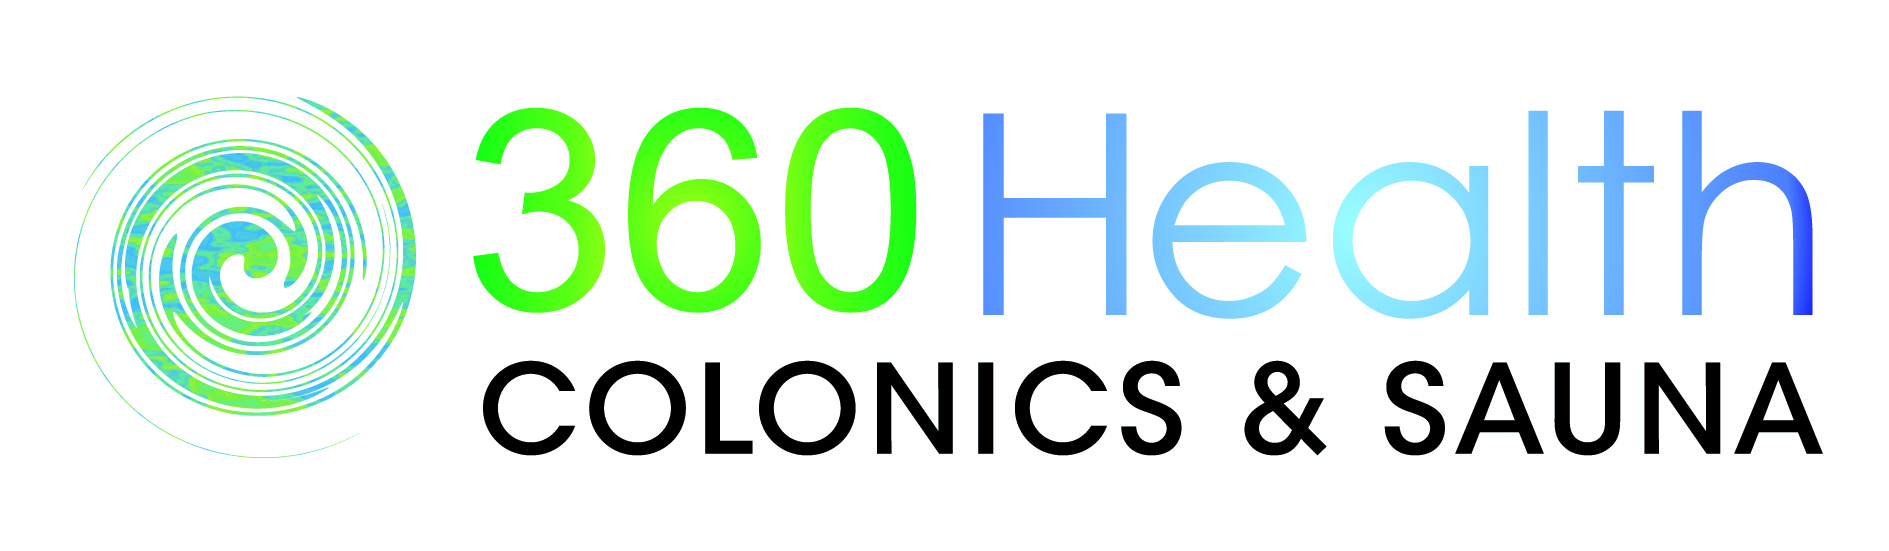 360 Health Colonics & Sauna